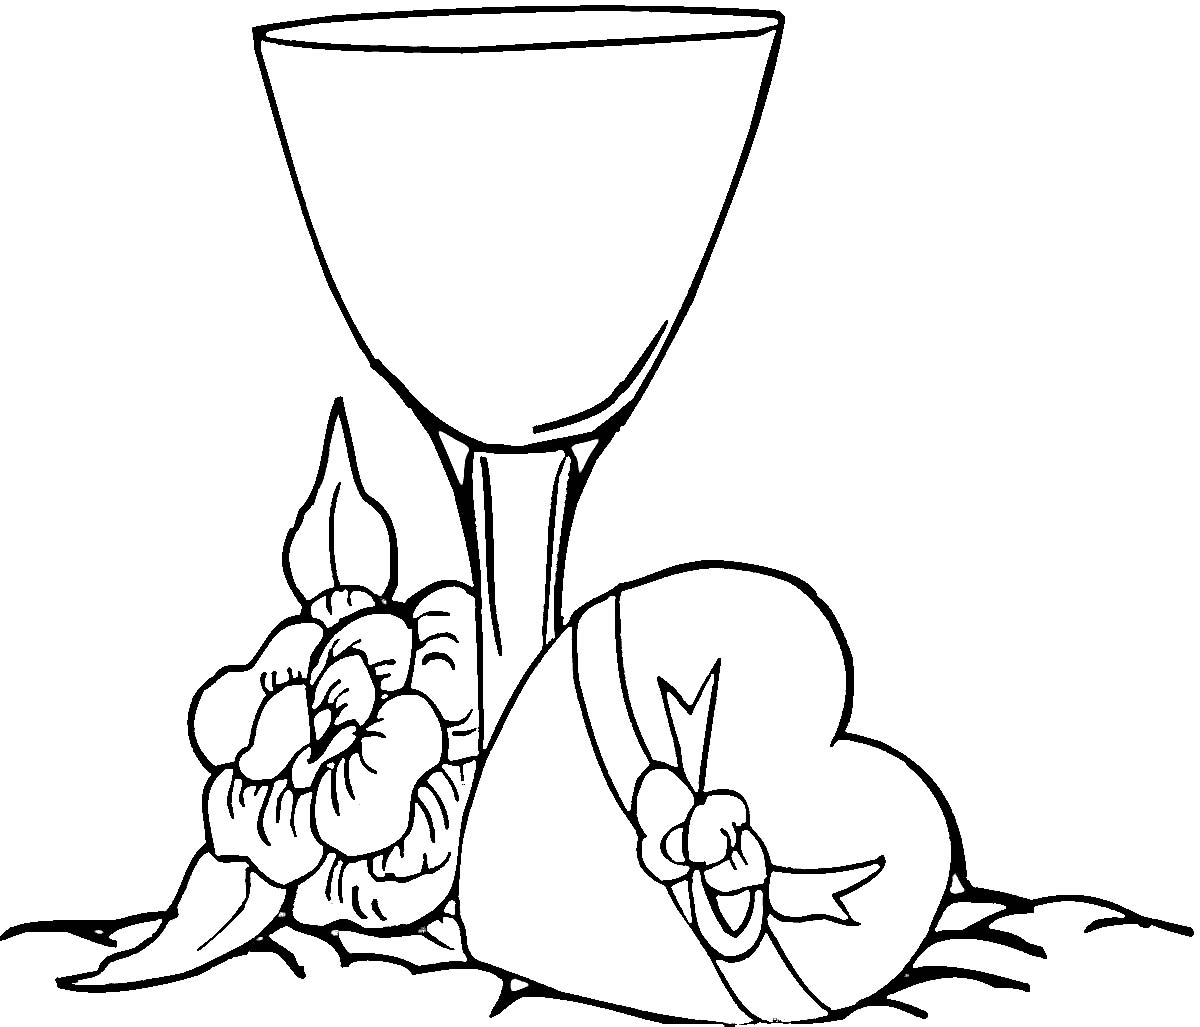 wine glass coloring page - glass of wine coloring clipart panda free clipart images